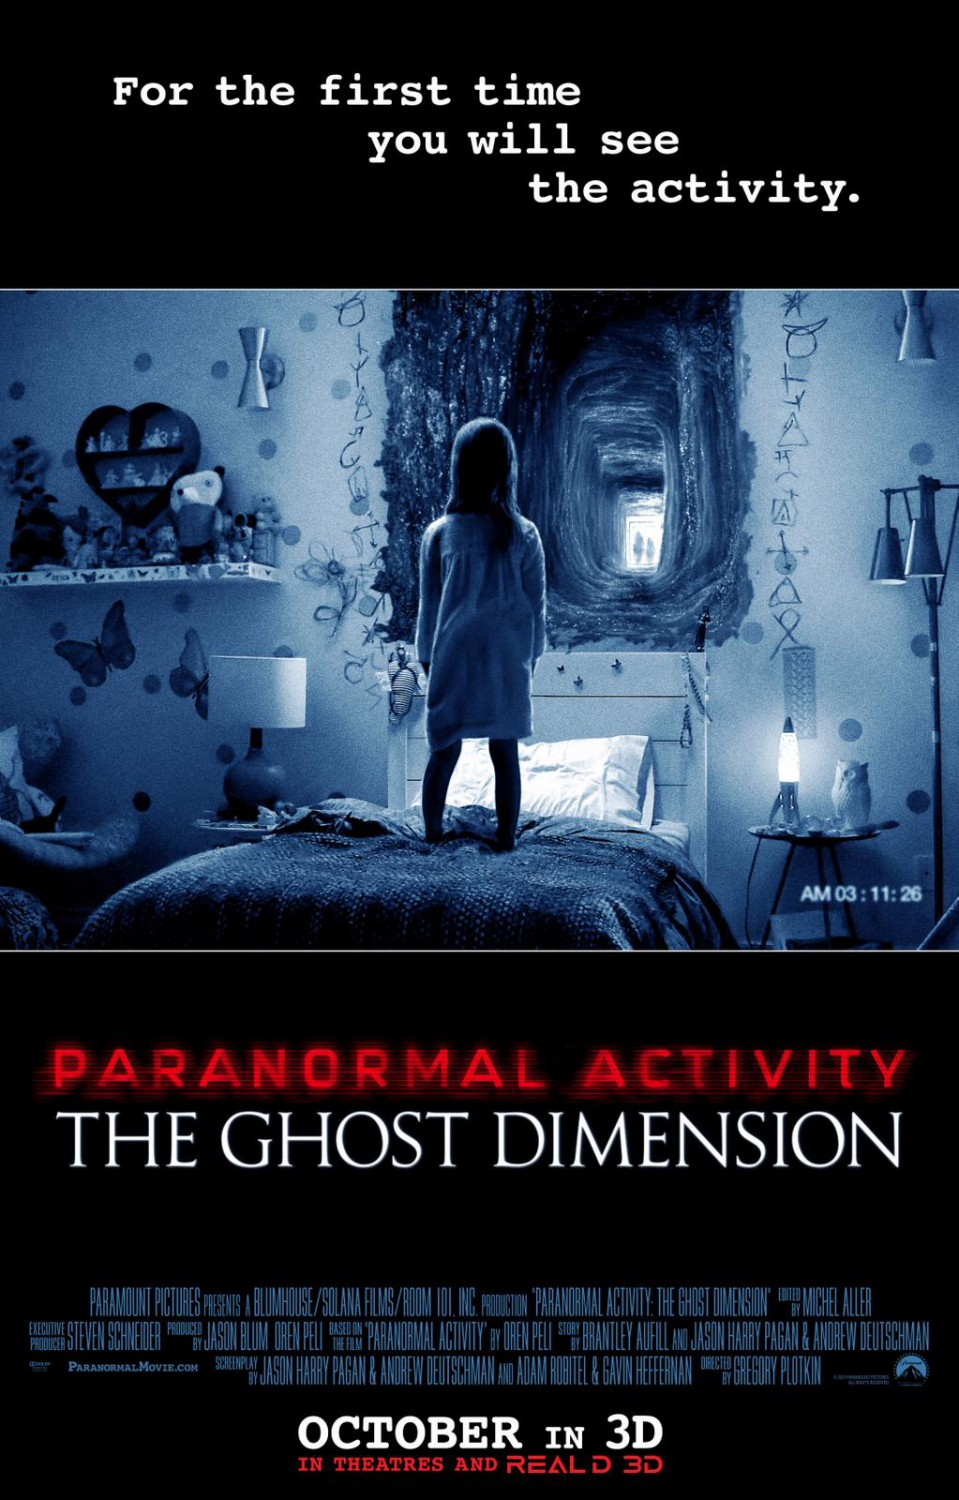 Paranormal Activity 5 poster has a terrible tagline  SciFiNow - The World's Best Science